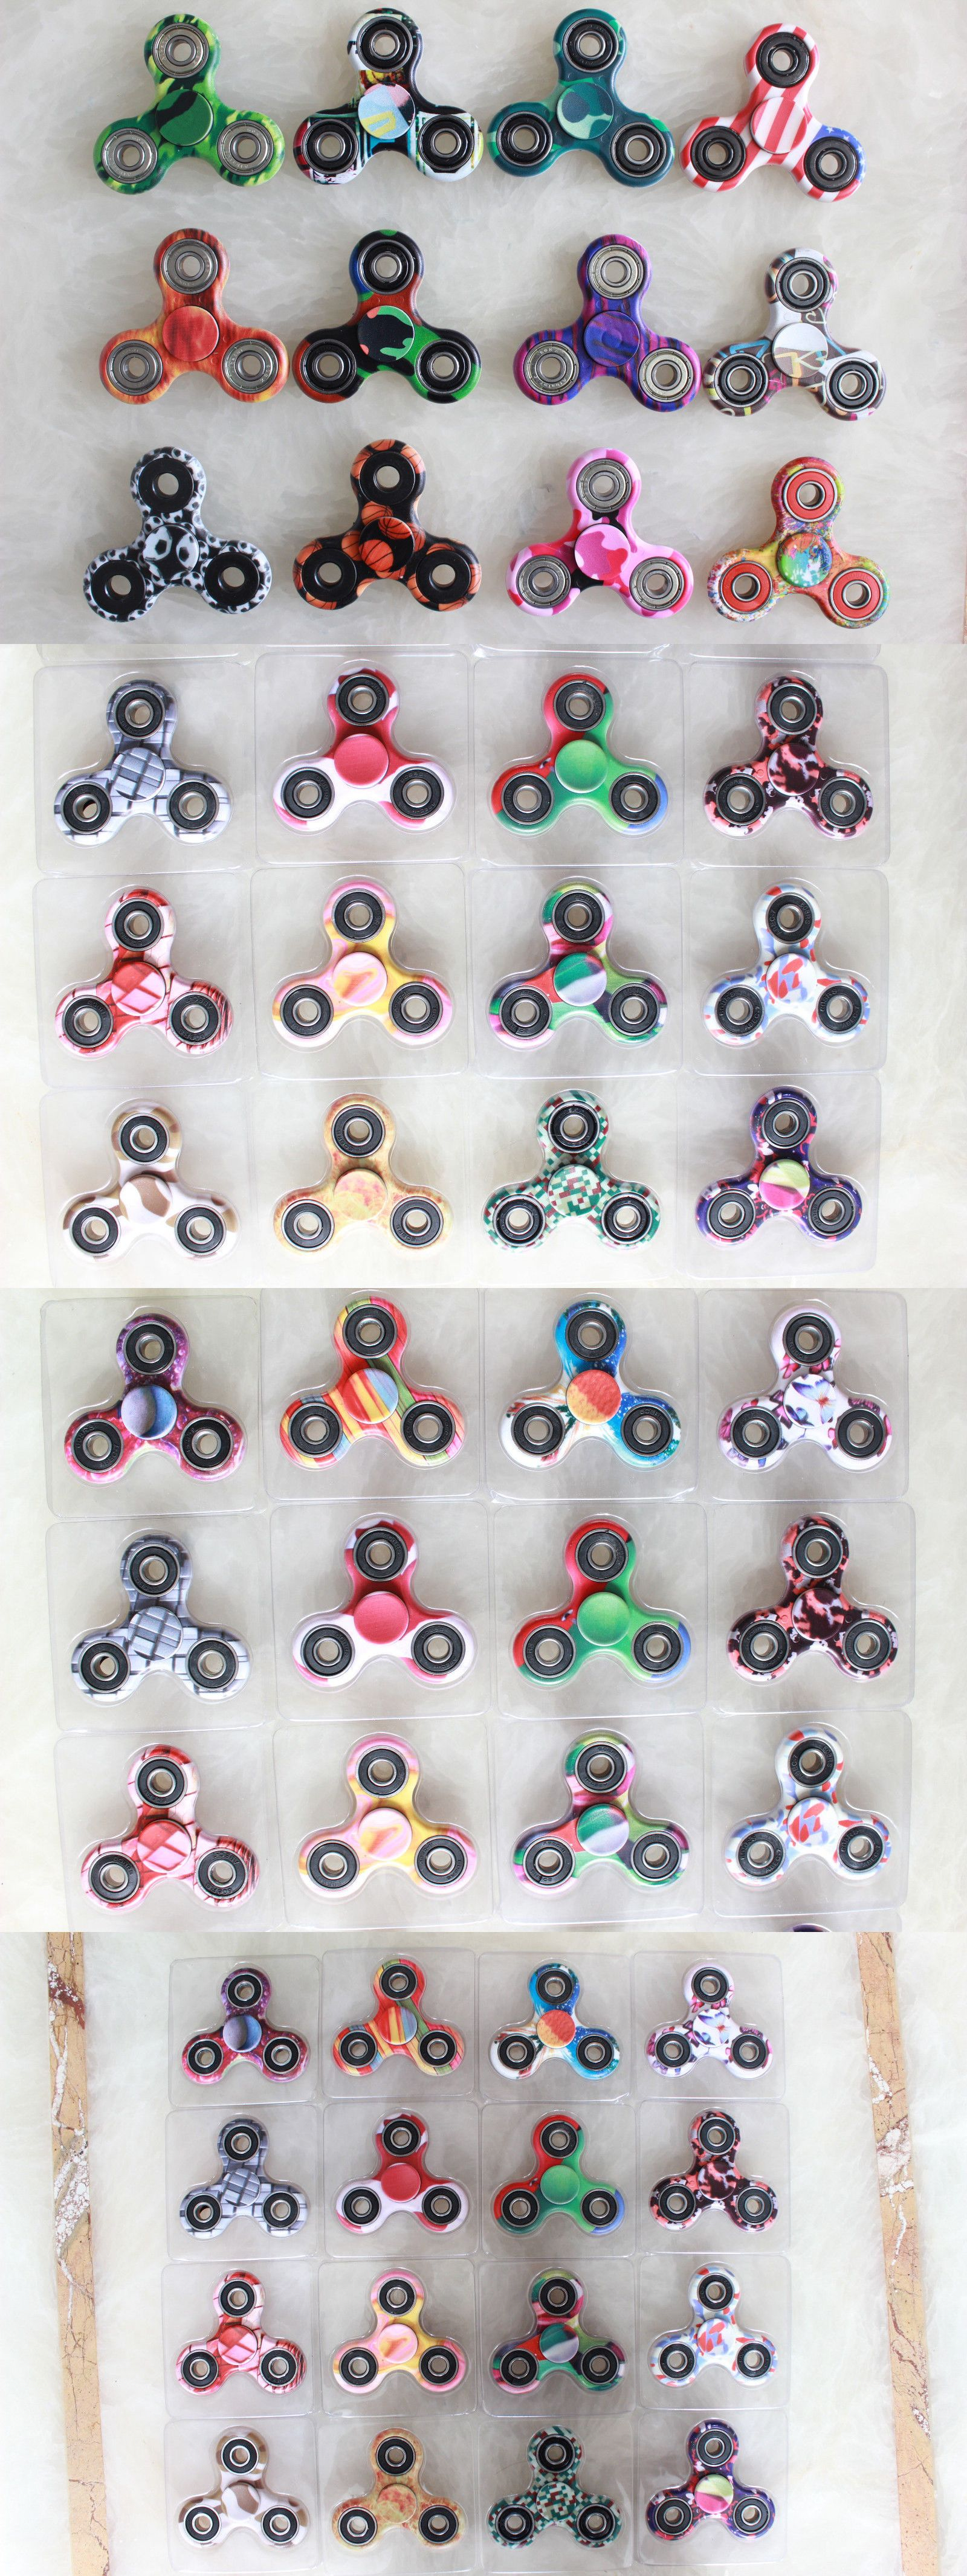 Other Games 234 Wholesale Lot 20X Fid Hand Tri Spinner Finger